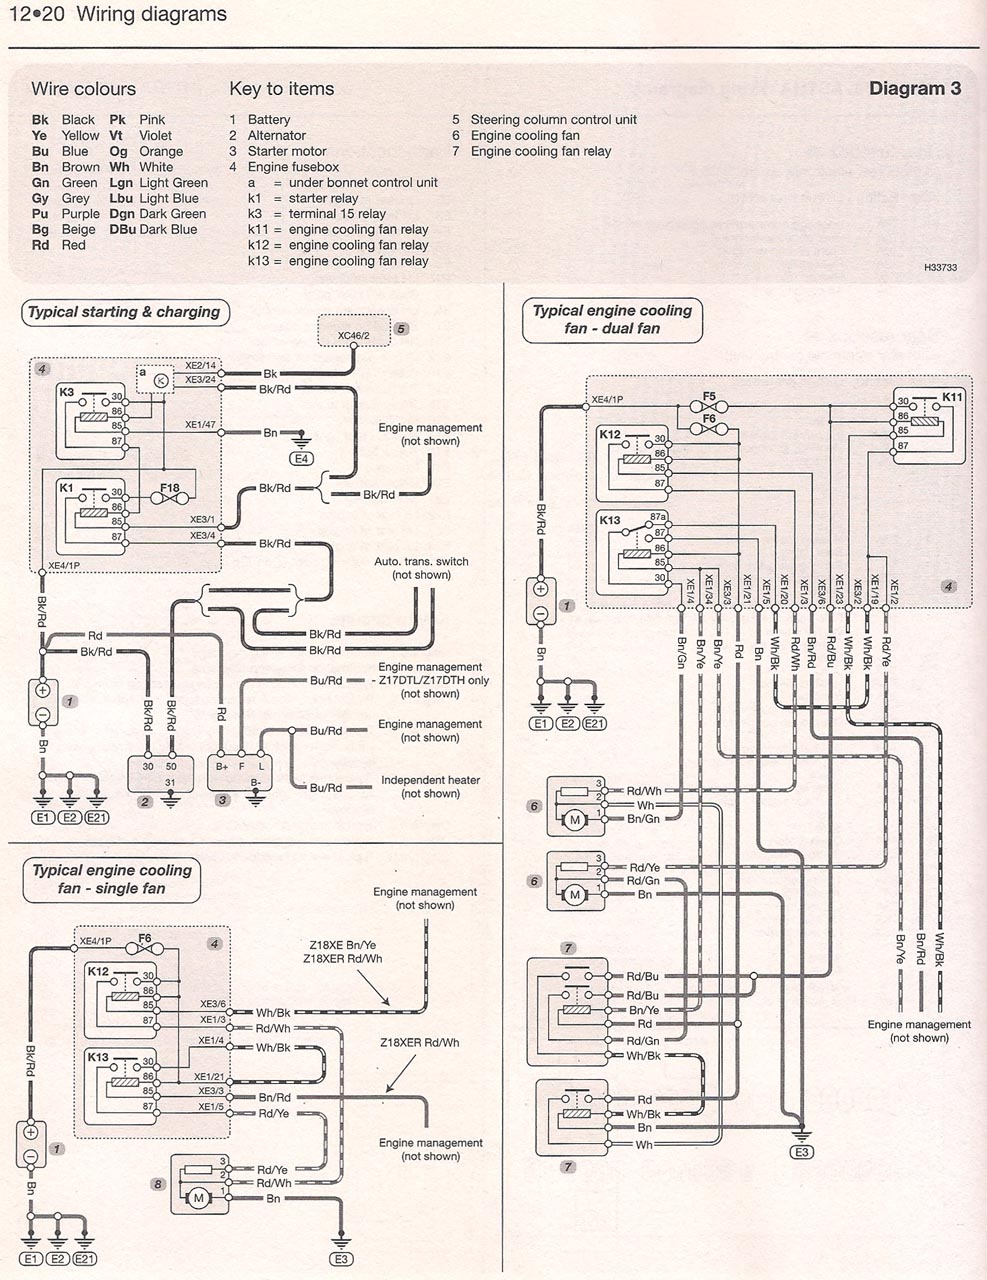 h3a astra h vxr wiring diagram vauxhall insignia towbar wiring diagram at gsmportal.co